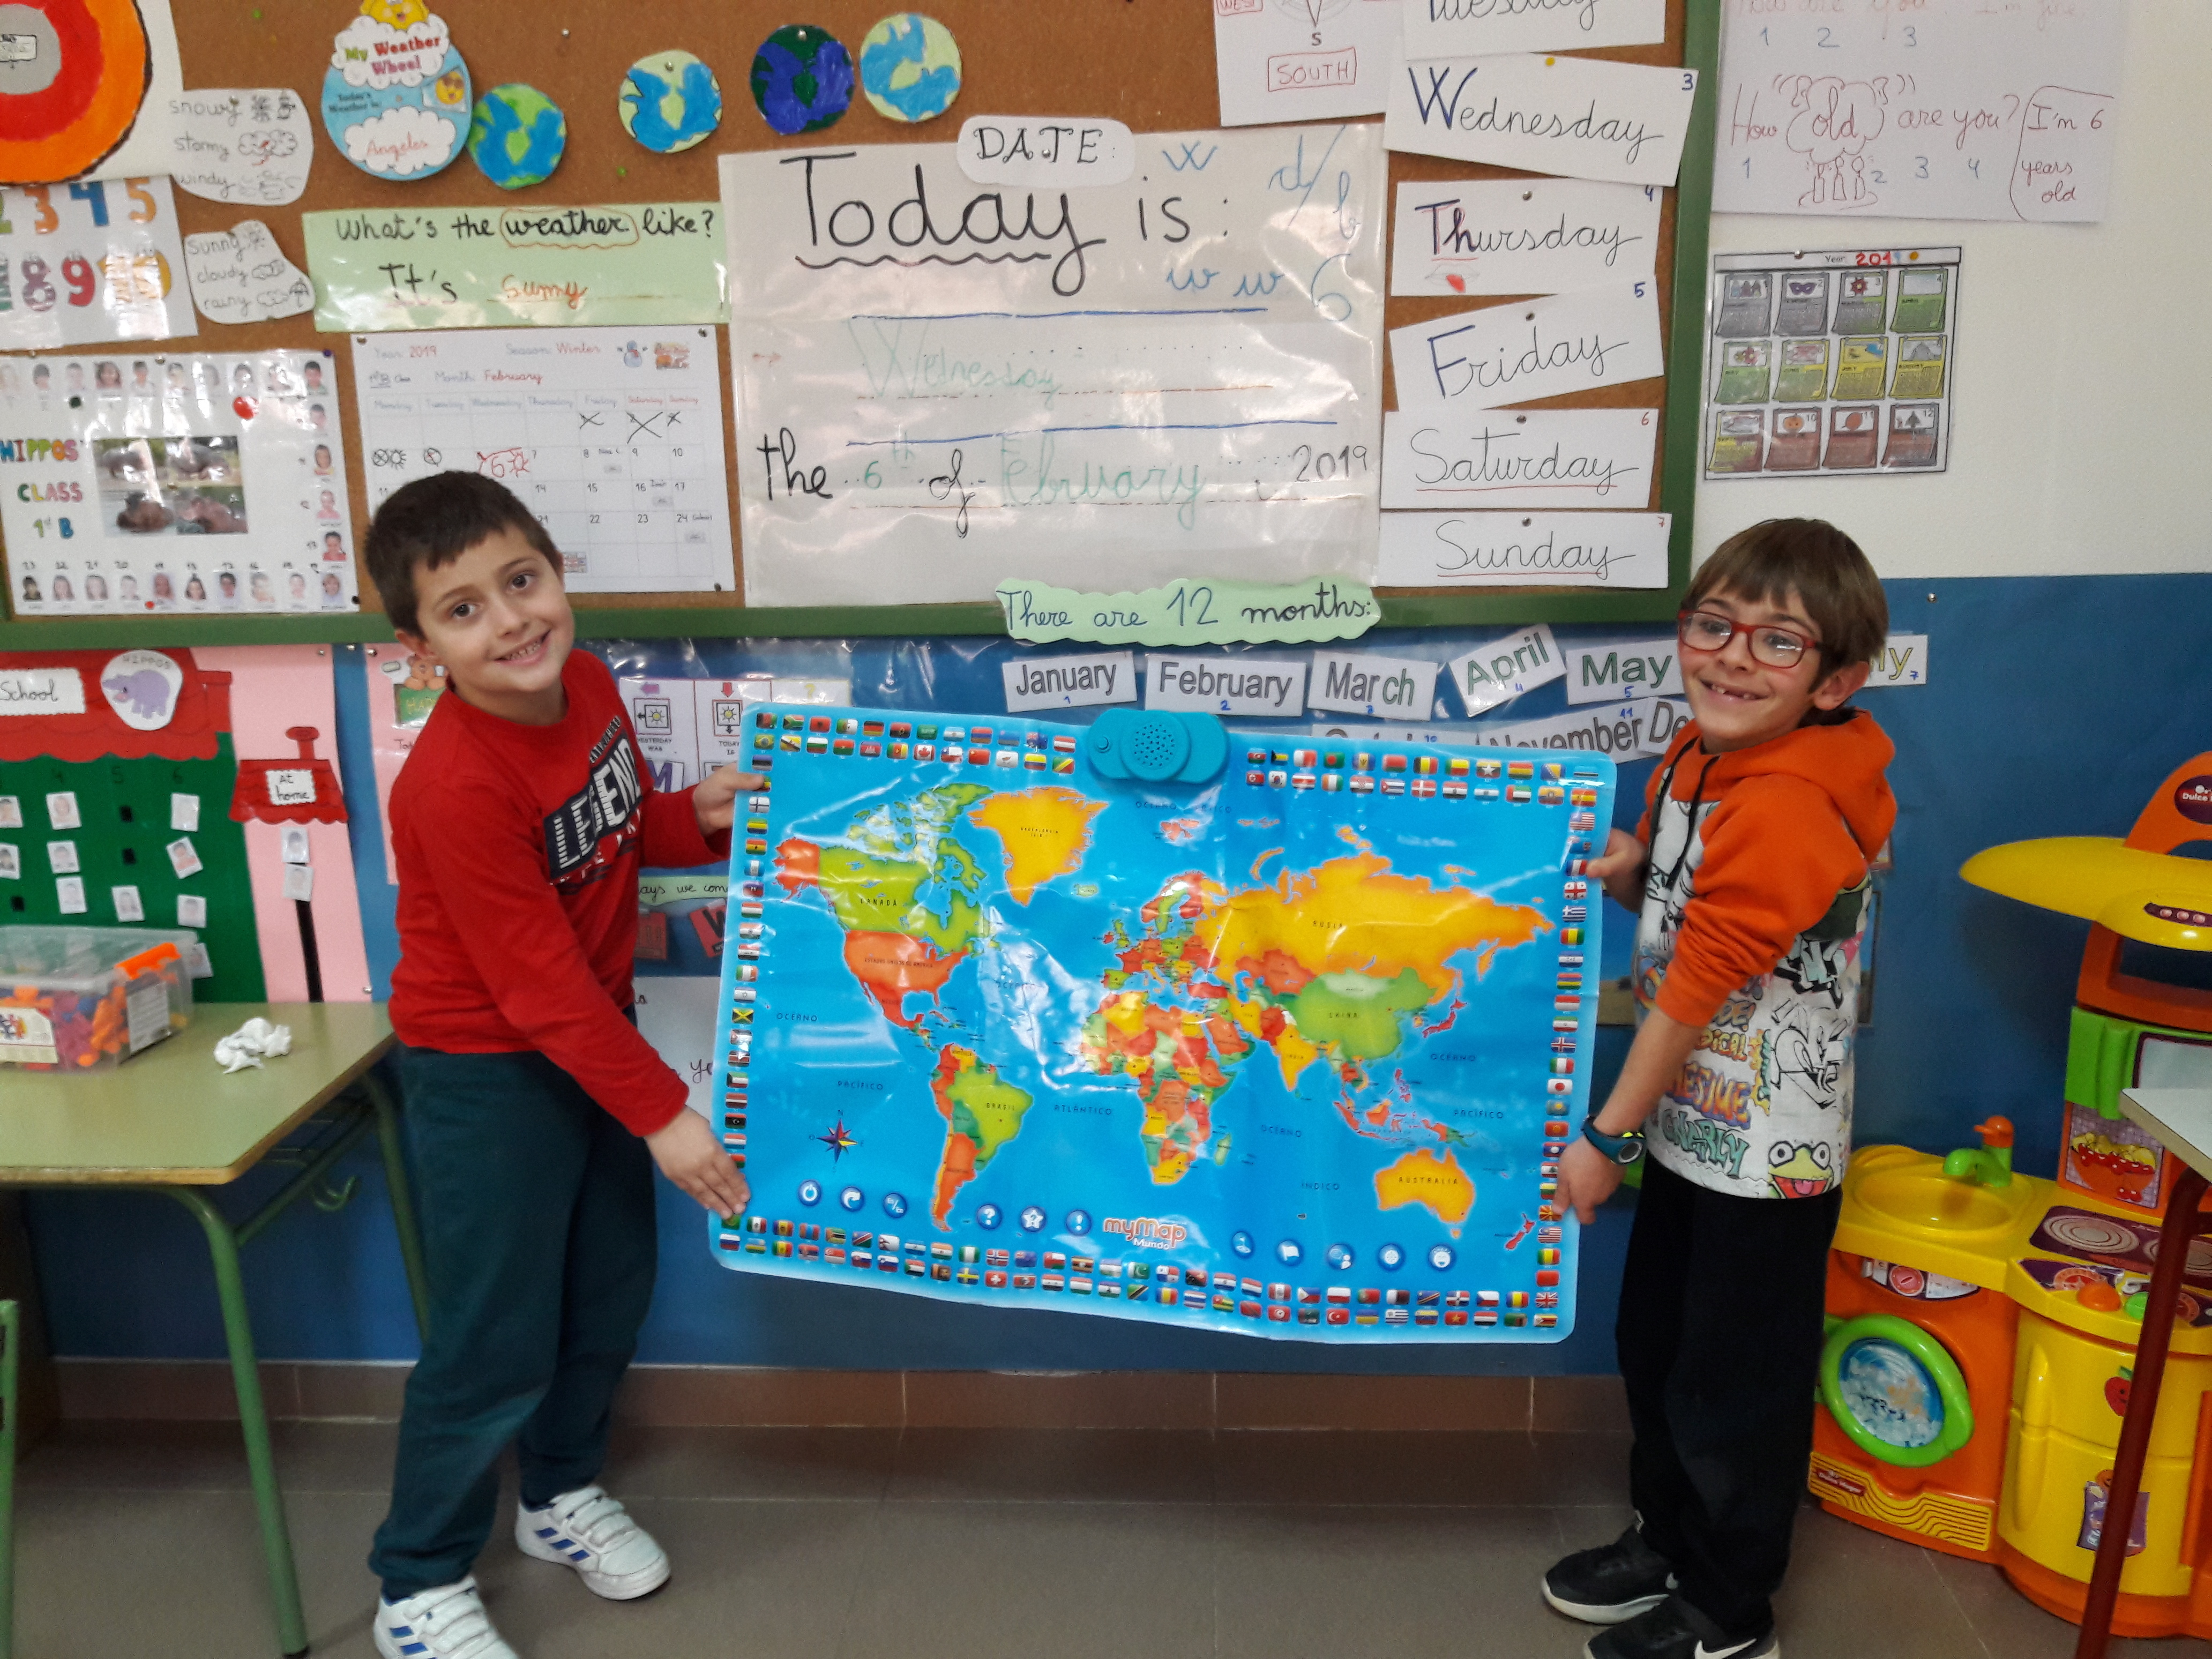 Mario and Luca-Matei are holding the World map